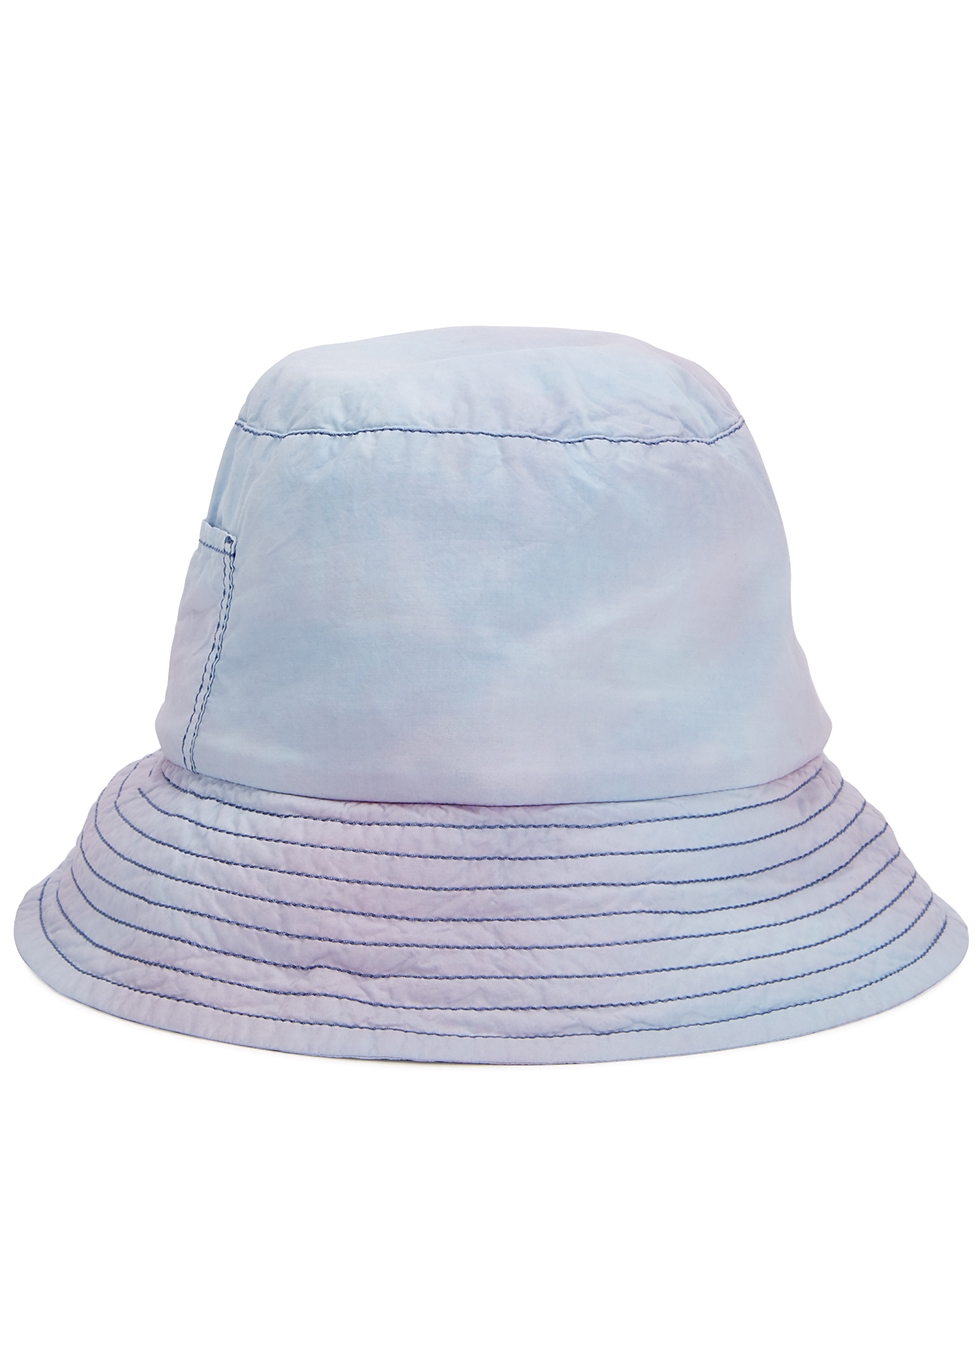 Acne Studios HEDDIE TIE-DYED COTTON BUCKET HAT